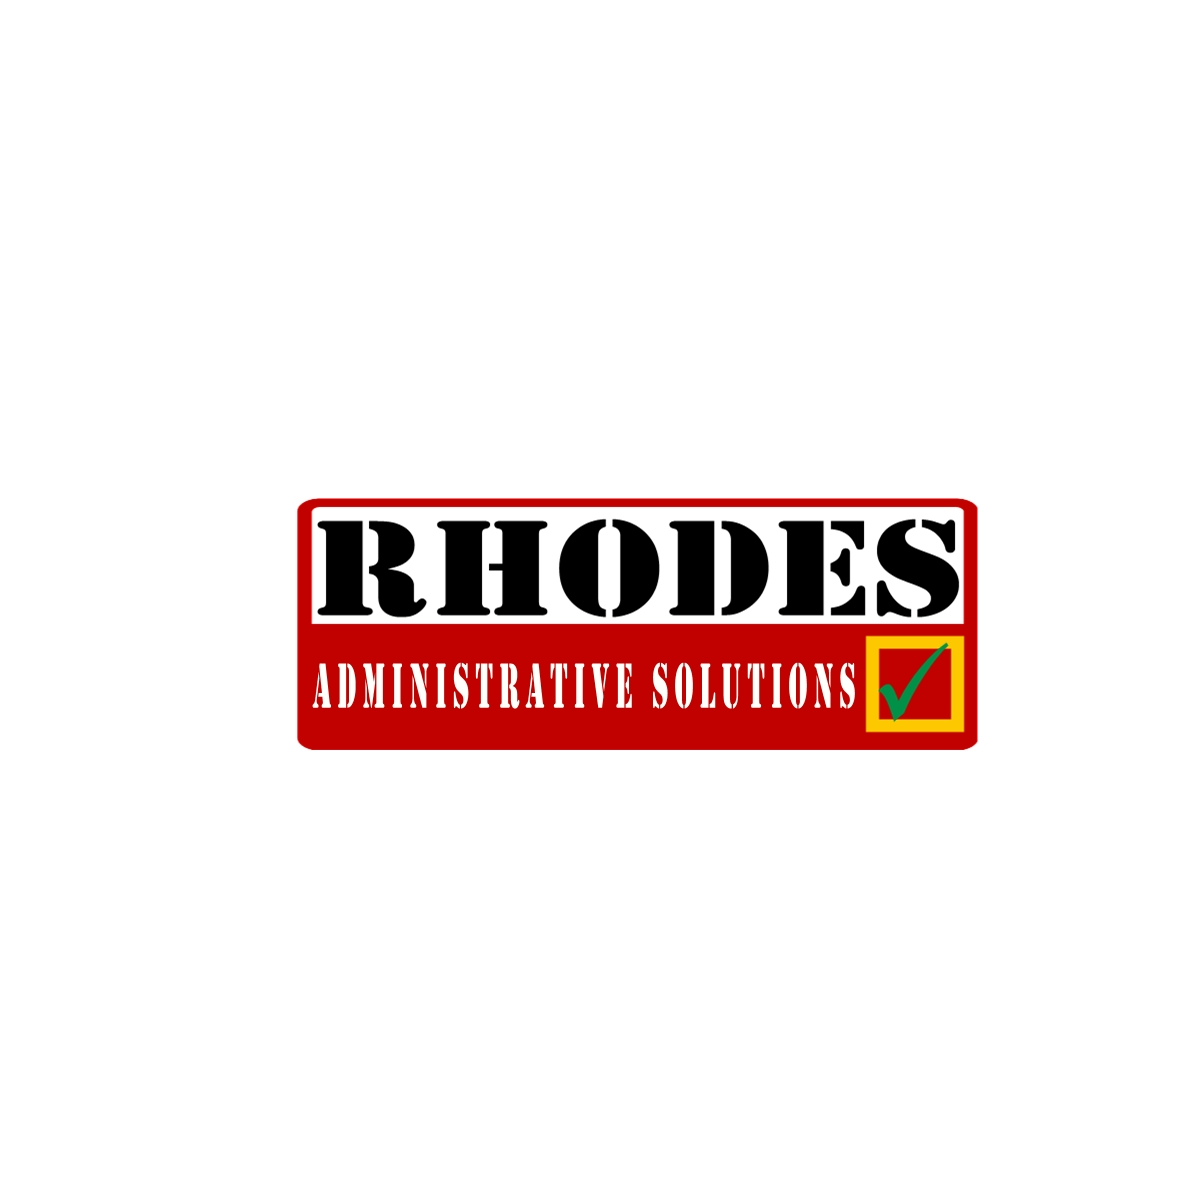 Logo Design by Joseph calunsag Cagaanan - Entry No. 58 in the Logo Design Contest Rhodes Administrative Solutions.